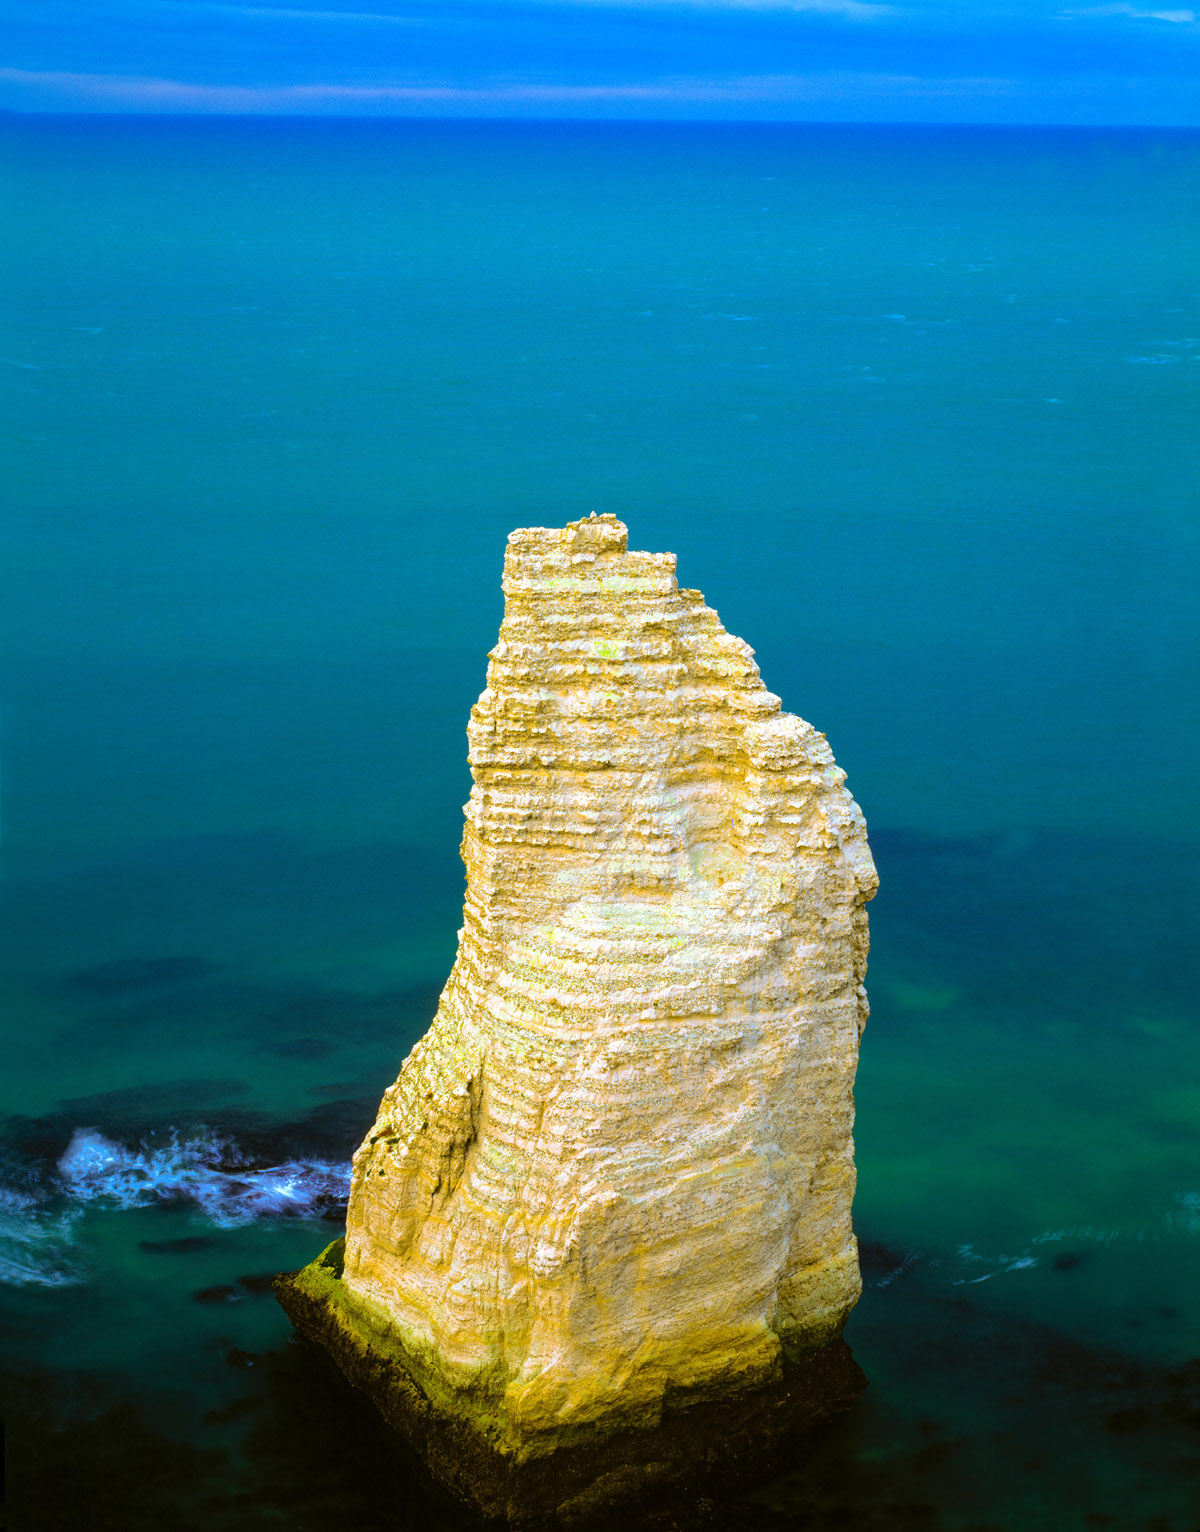 Seastack,  Normandy Cliffs, White Cliffs, Etretat, France photographed by Tom Till